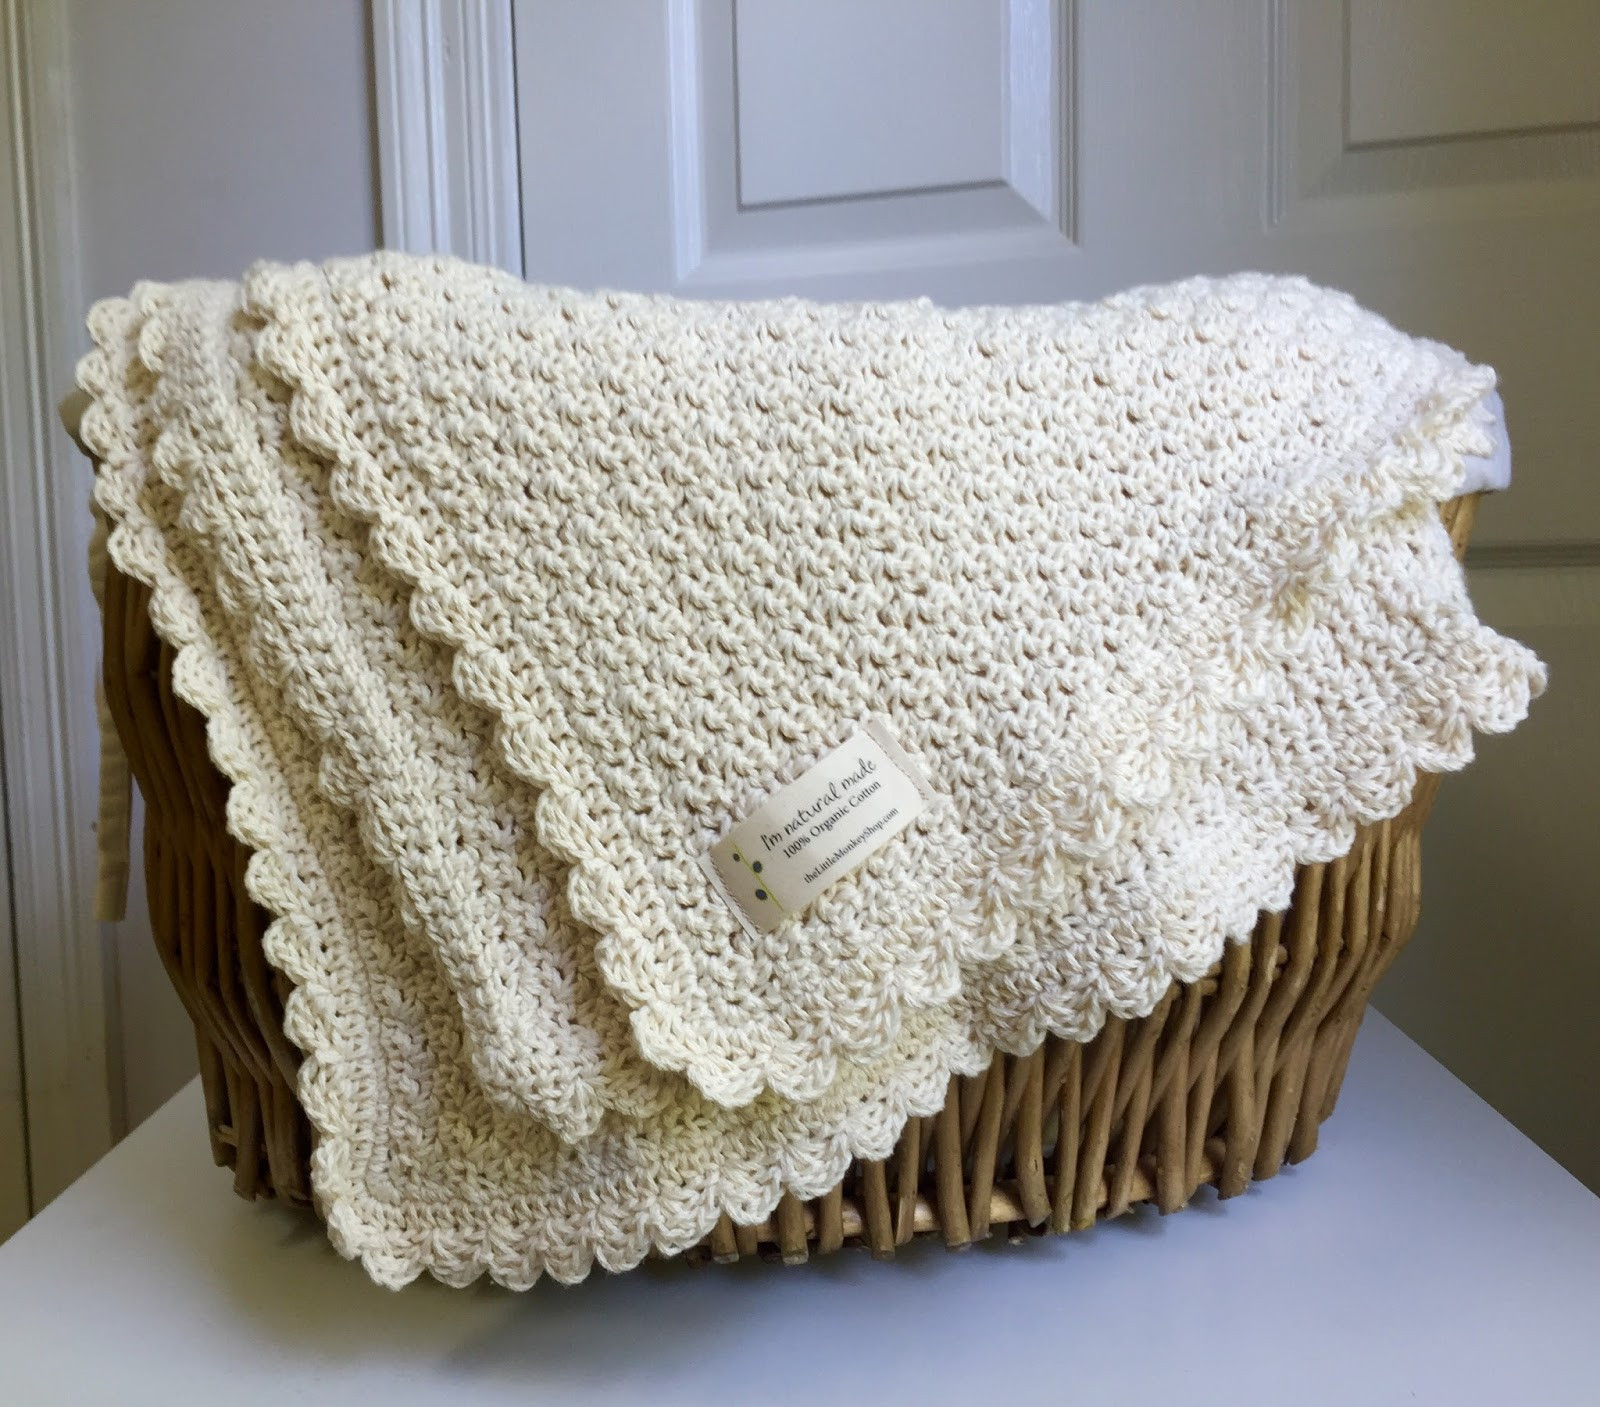 Crochet Throws Patterns Fresh Pure and Simple Baby Blanket A Simply Beautiful Crochet Of Wonderful 44 Images Crochet Throws Patterns